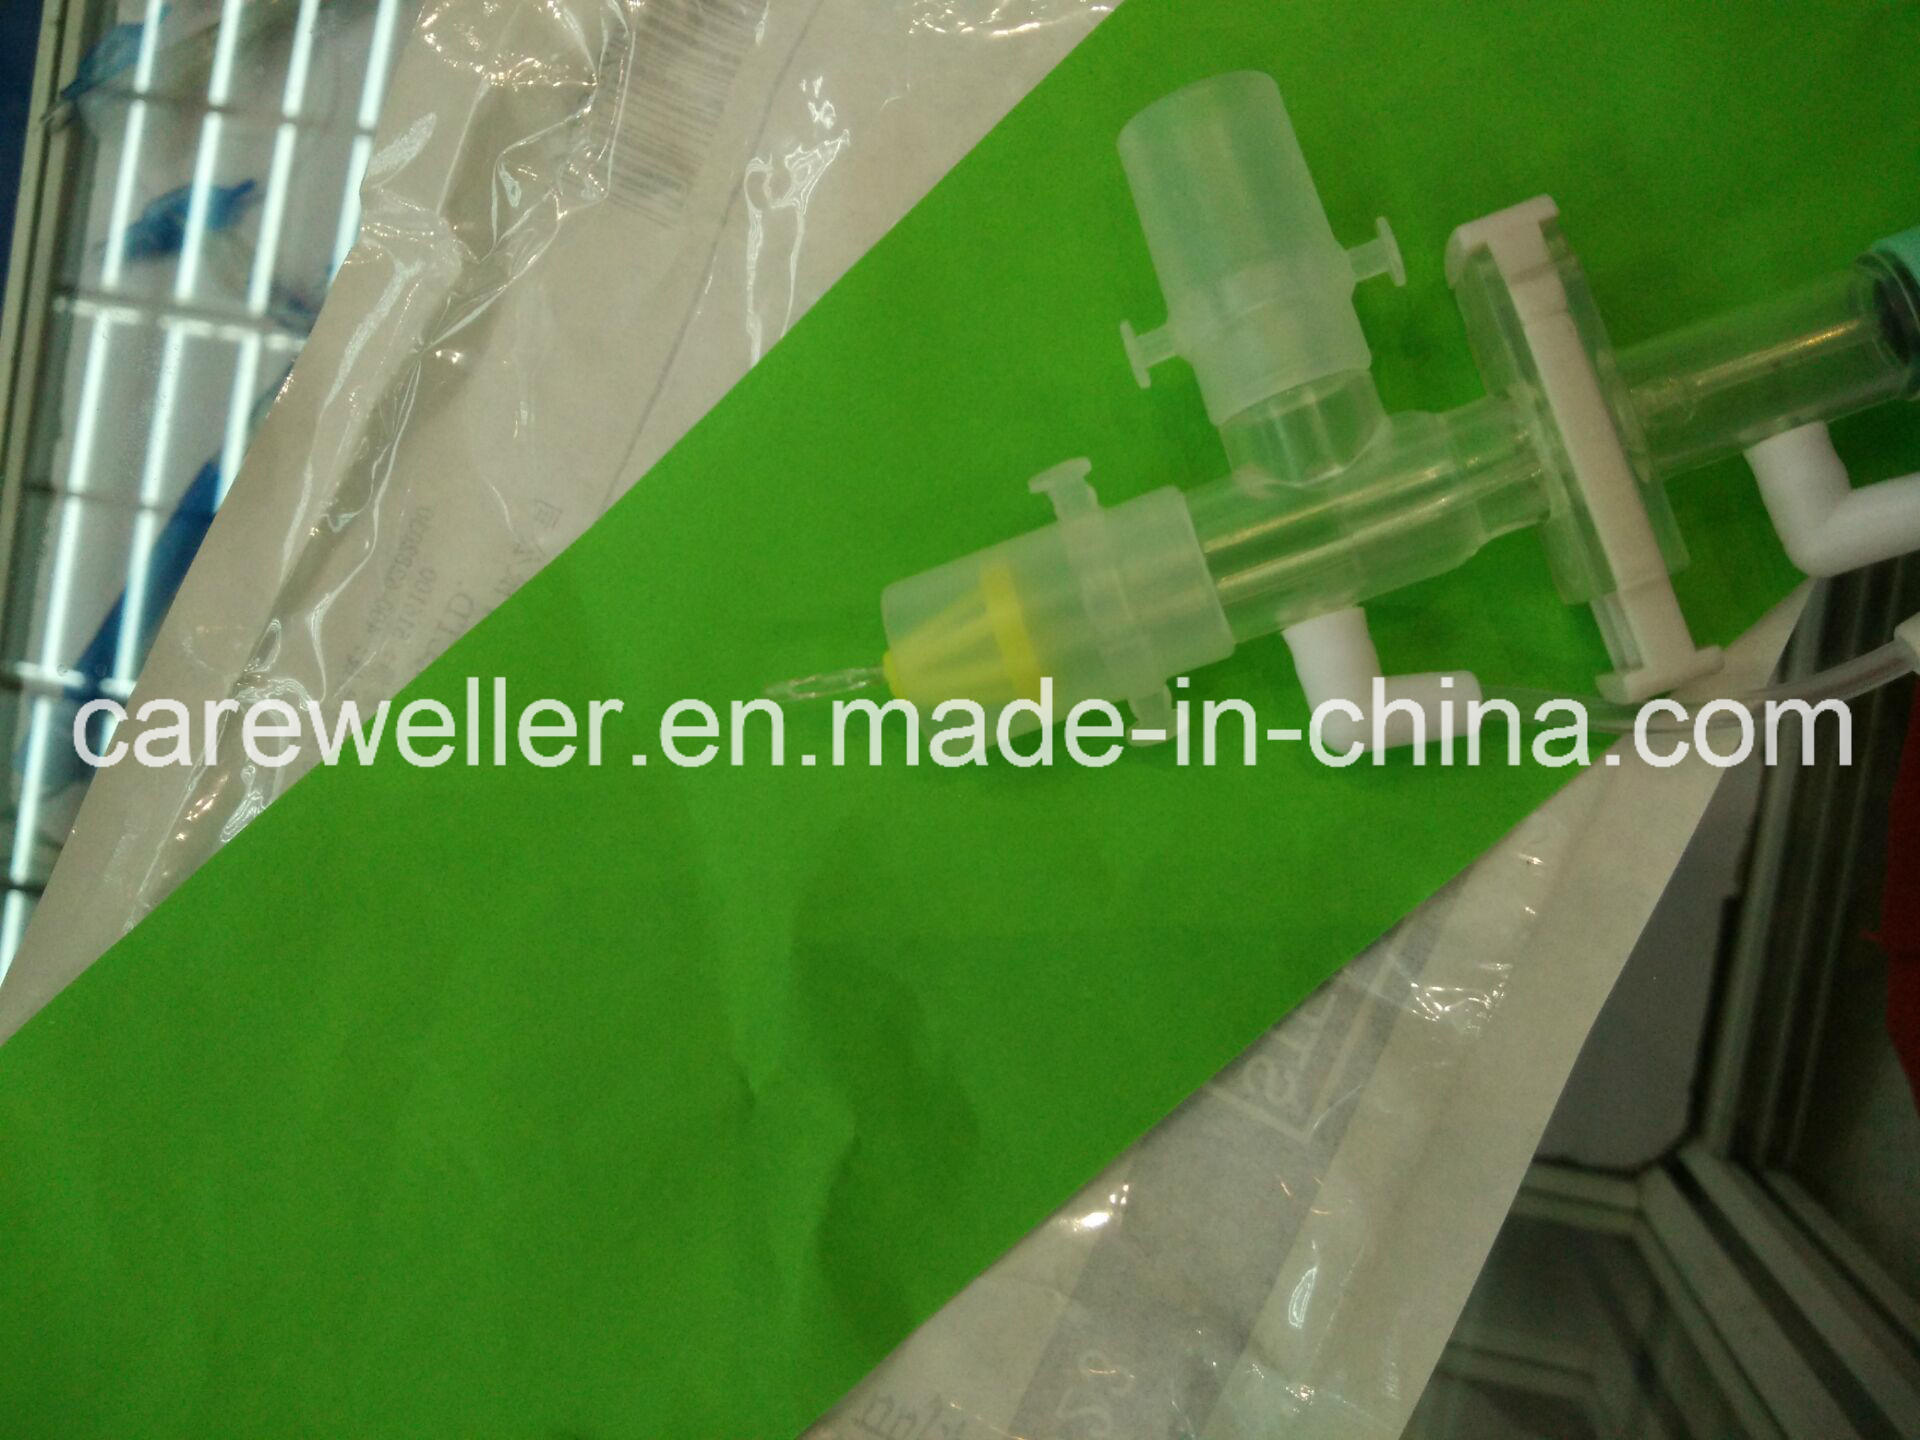 Disposable Medical Closed Suction Catheter